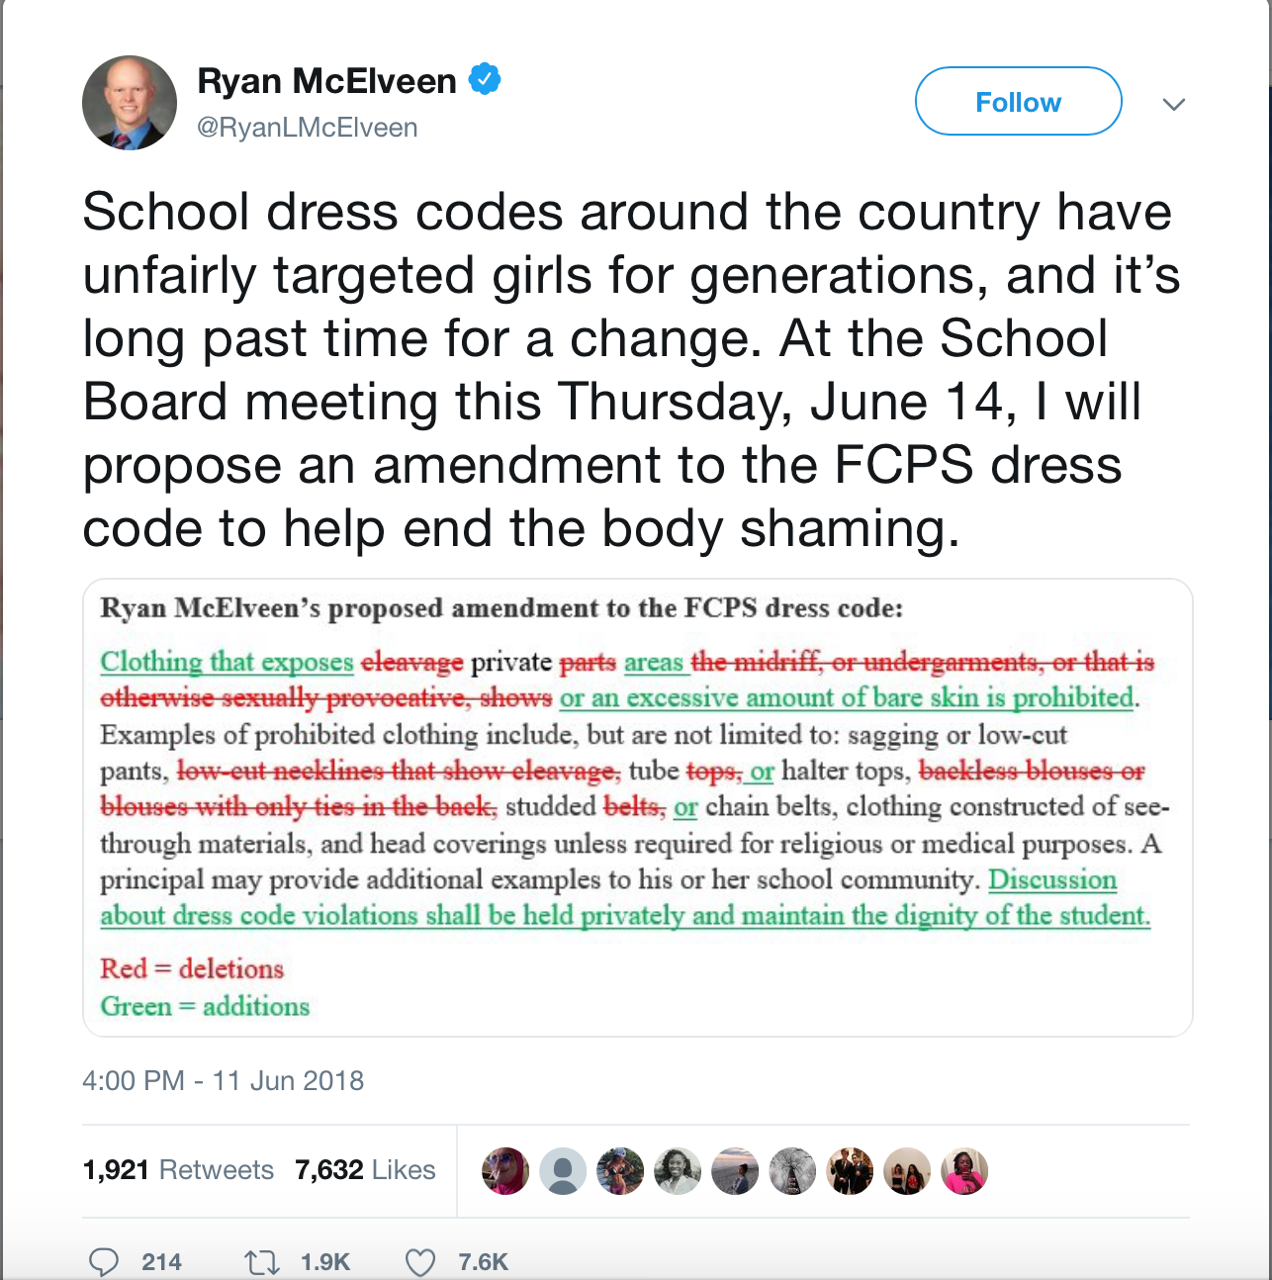 Ryan McElveen tweets his thoughts on the FCPS dress code